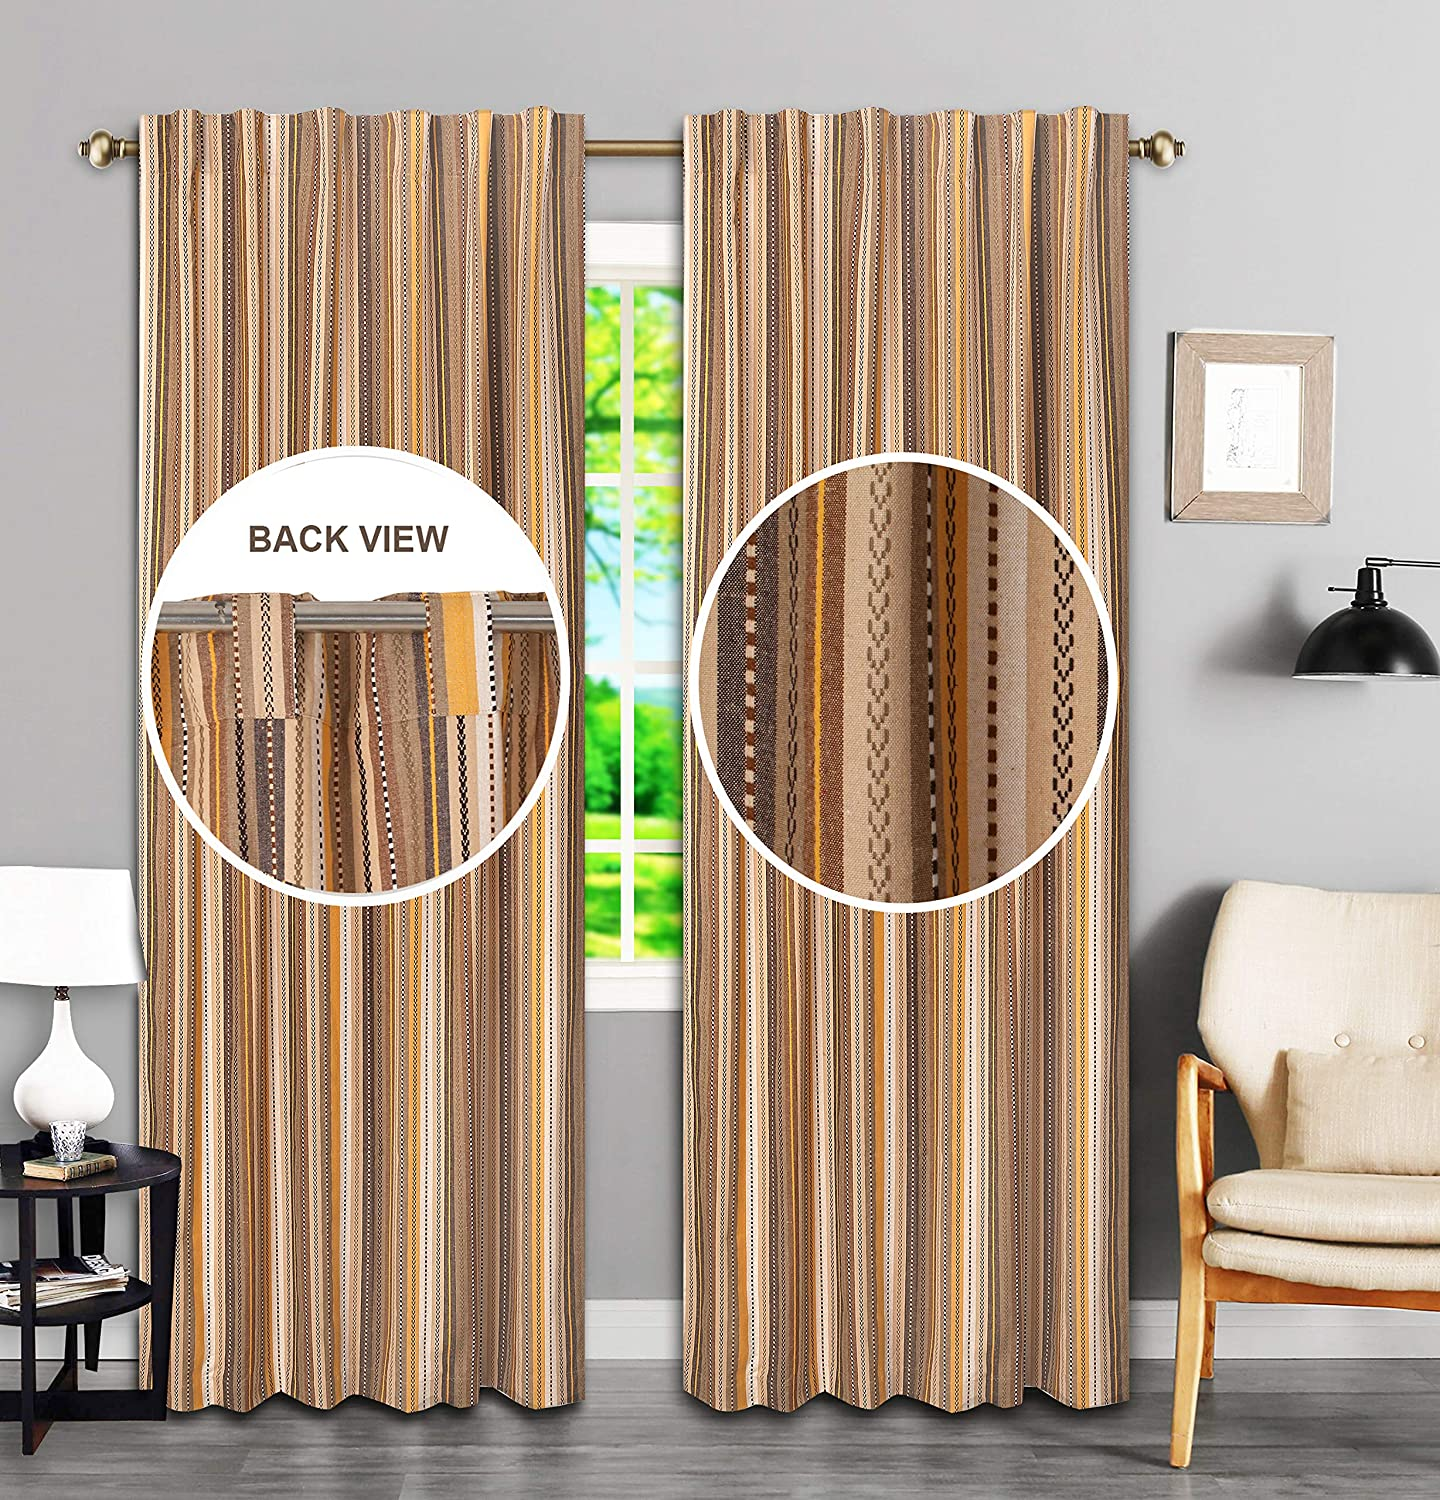 Farmhouse Curtain in Salsa Beige Multi 50x96 inch, Cotton Curtains, 2 Panels Curtain,Tab Top Curtains, Room Darkening Drapes, Curtains for Bedroom, Curtains for Living Room, Set of 2